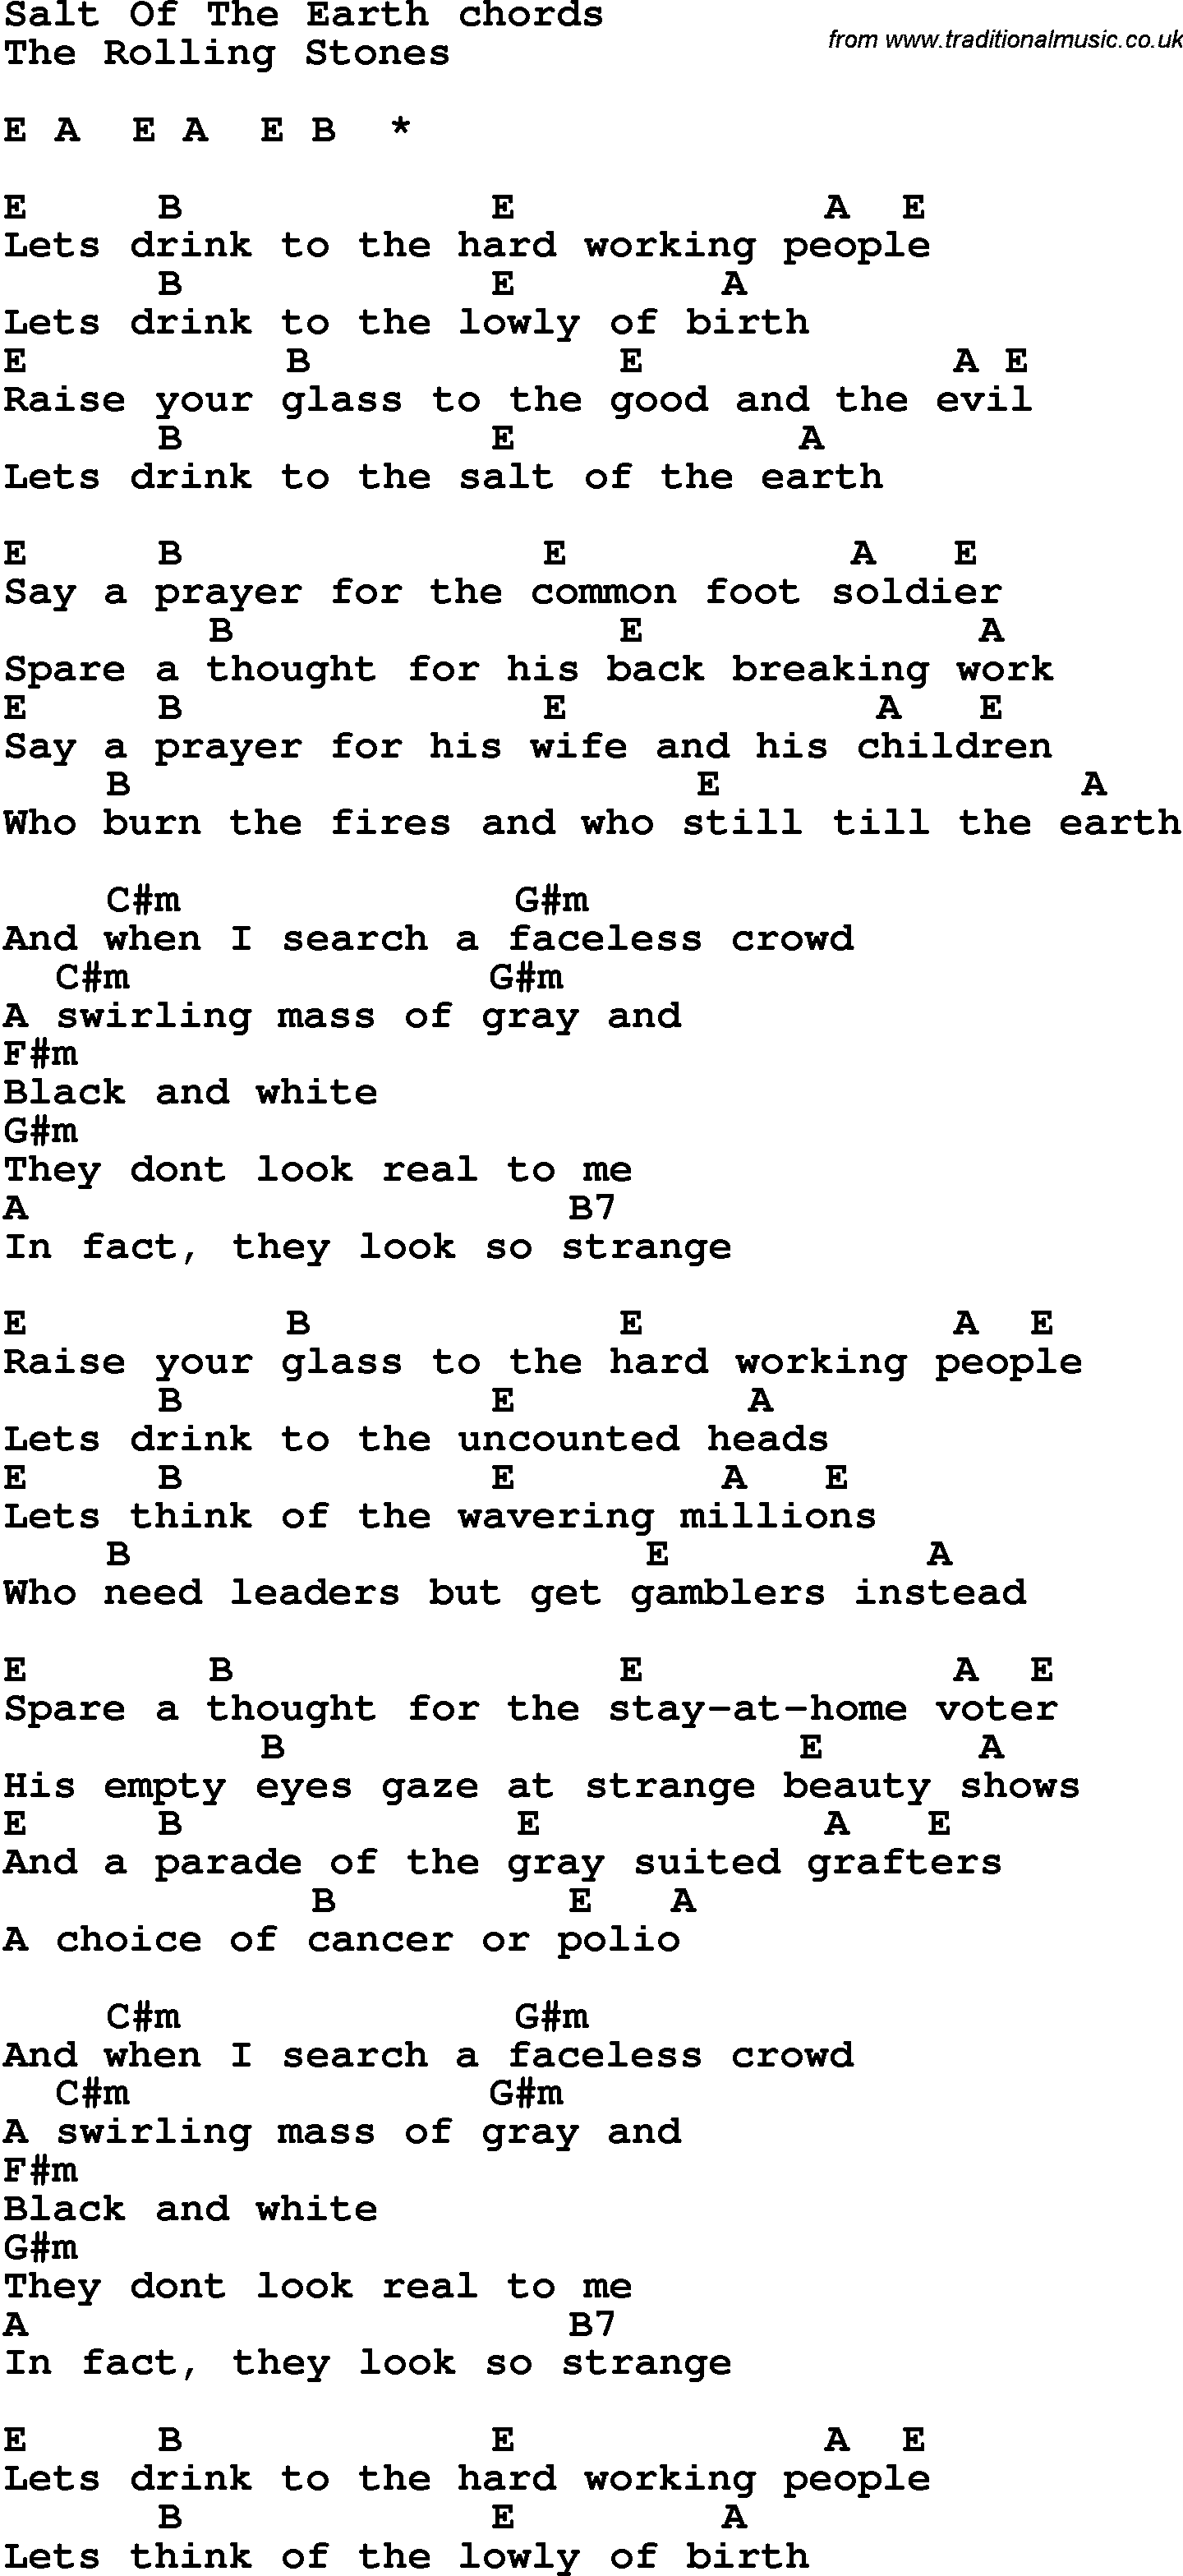 Song lyrics with guitar chords for salt of the earth song lyrics with guitar chords for salt of the earth hexwebz Choice Image